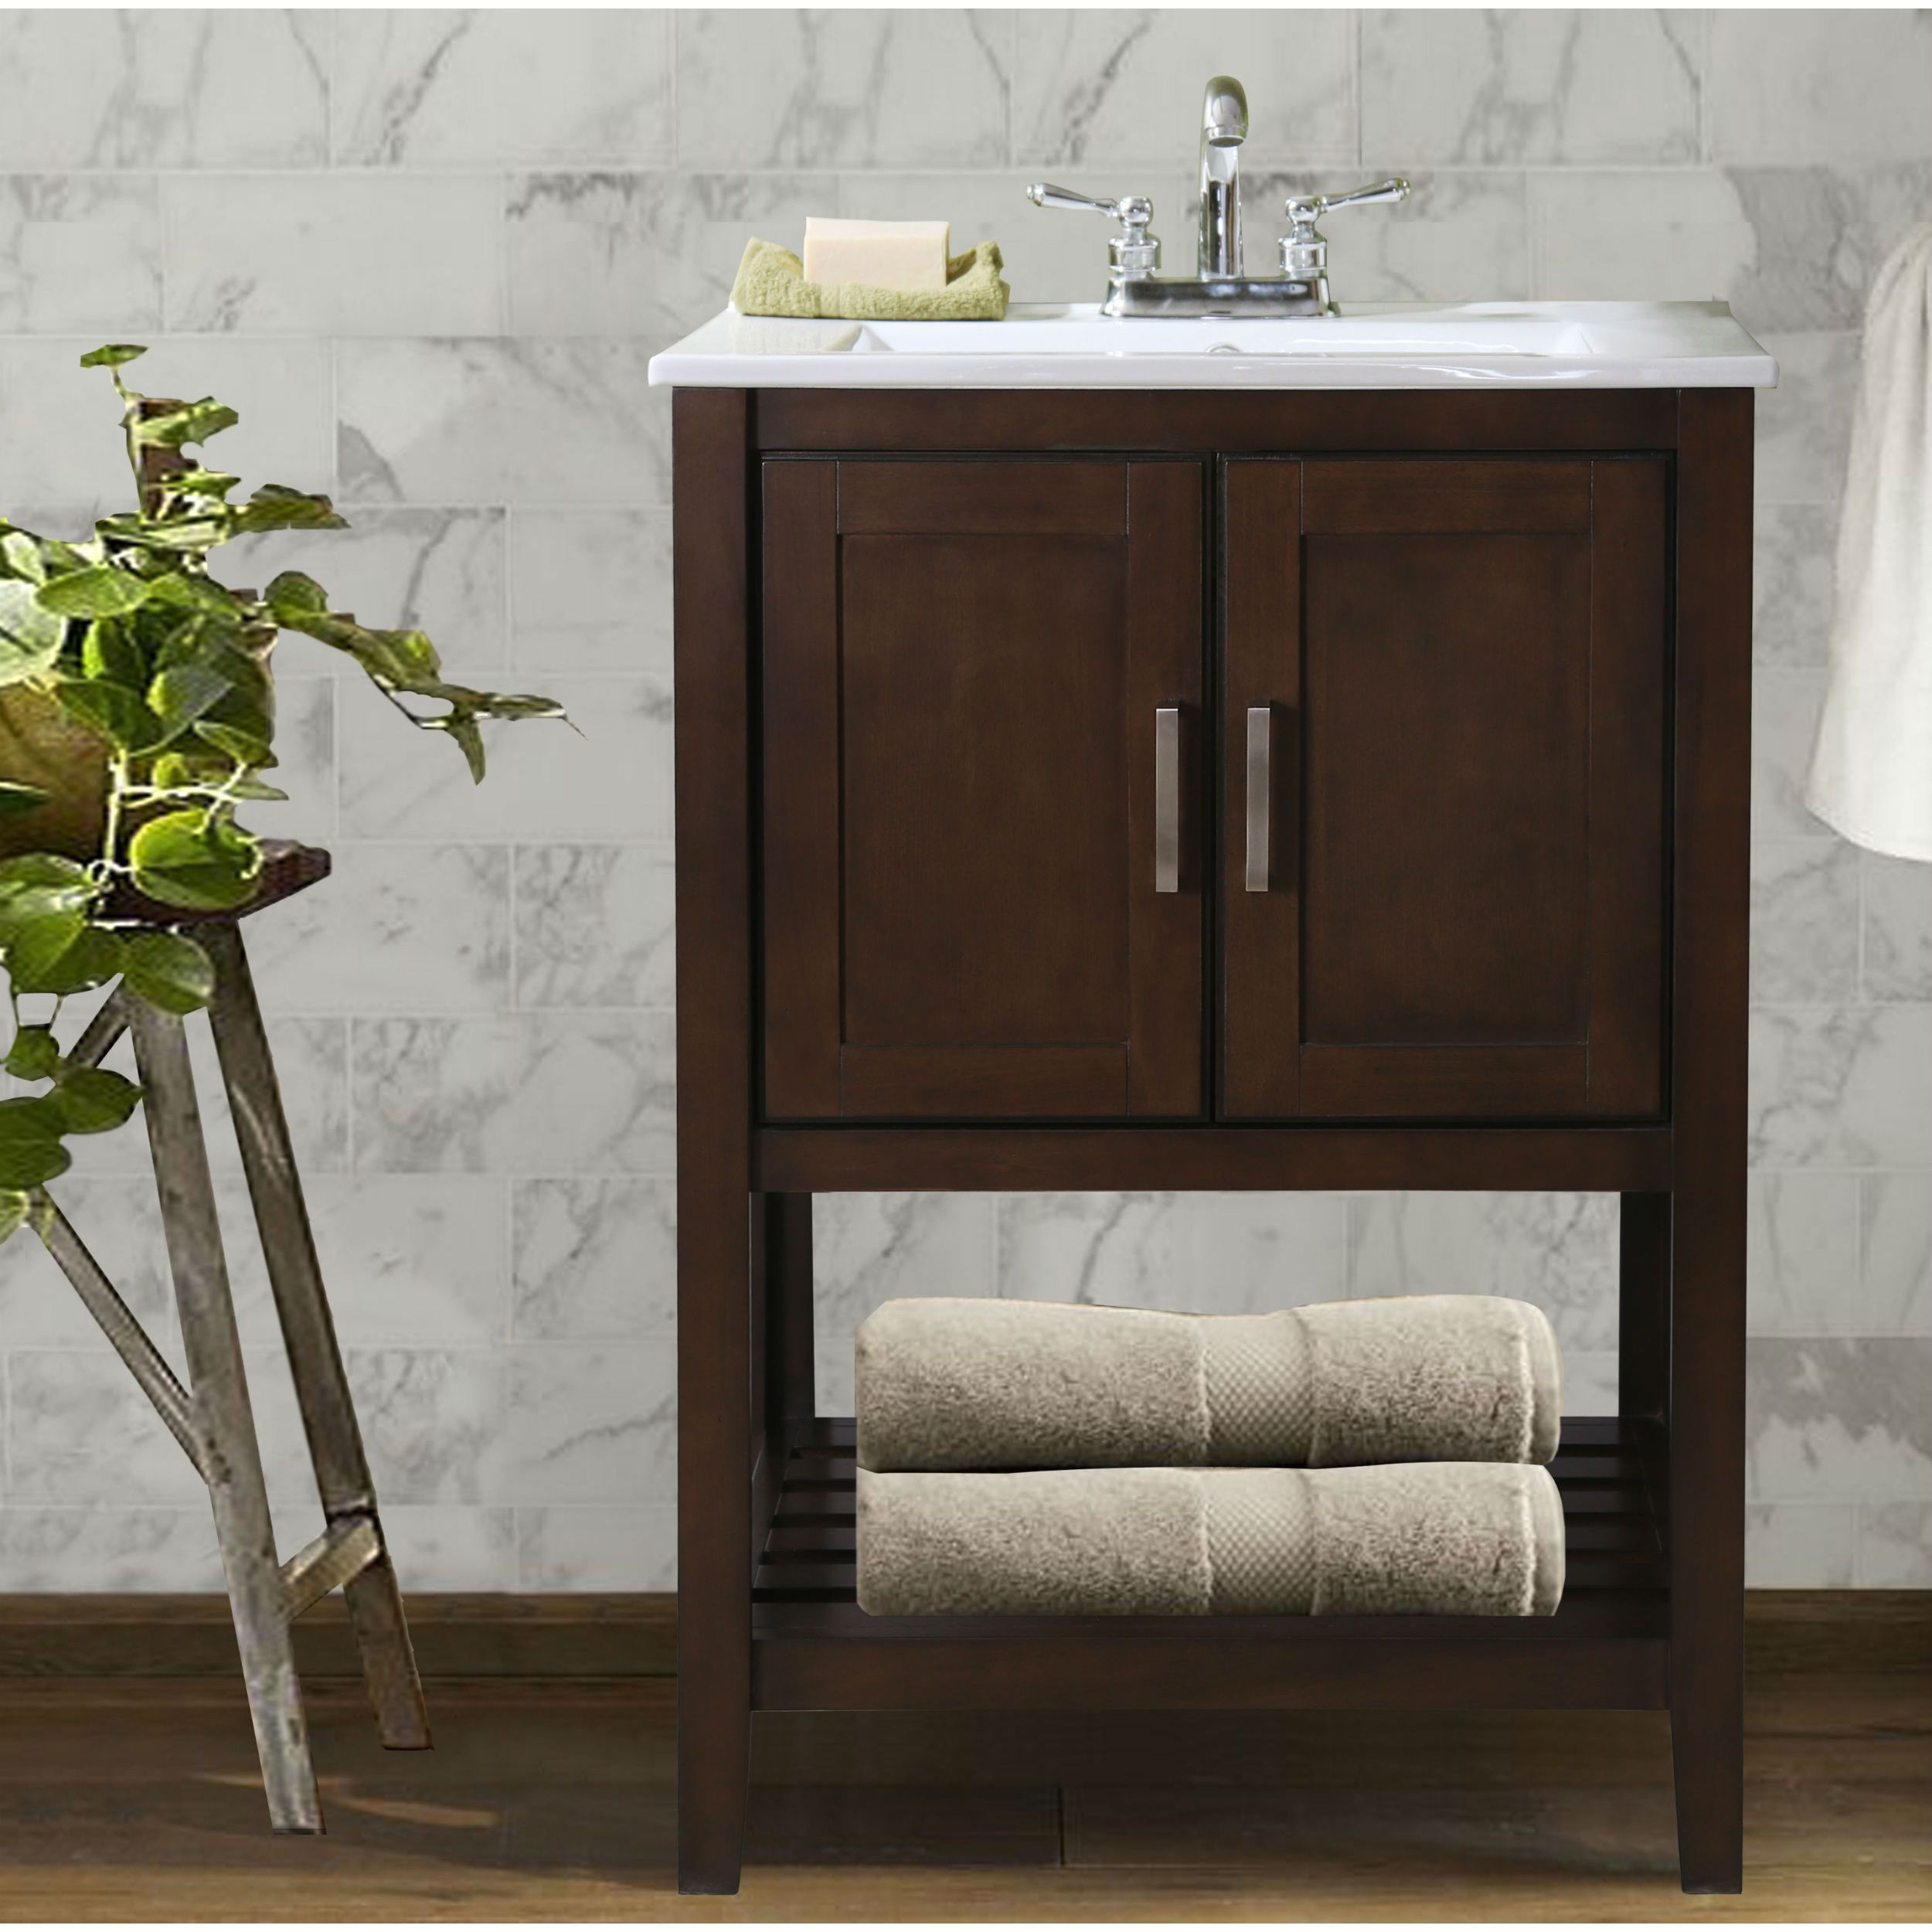 Superbe Legion Furniture Traditional Single Sink Bathroom Vanity (Coffee Finish,  Faucet Not Included),